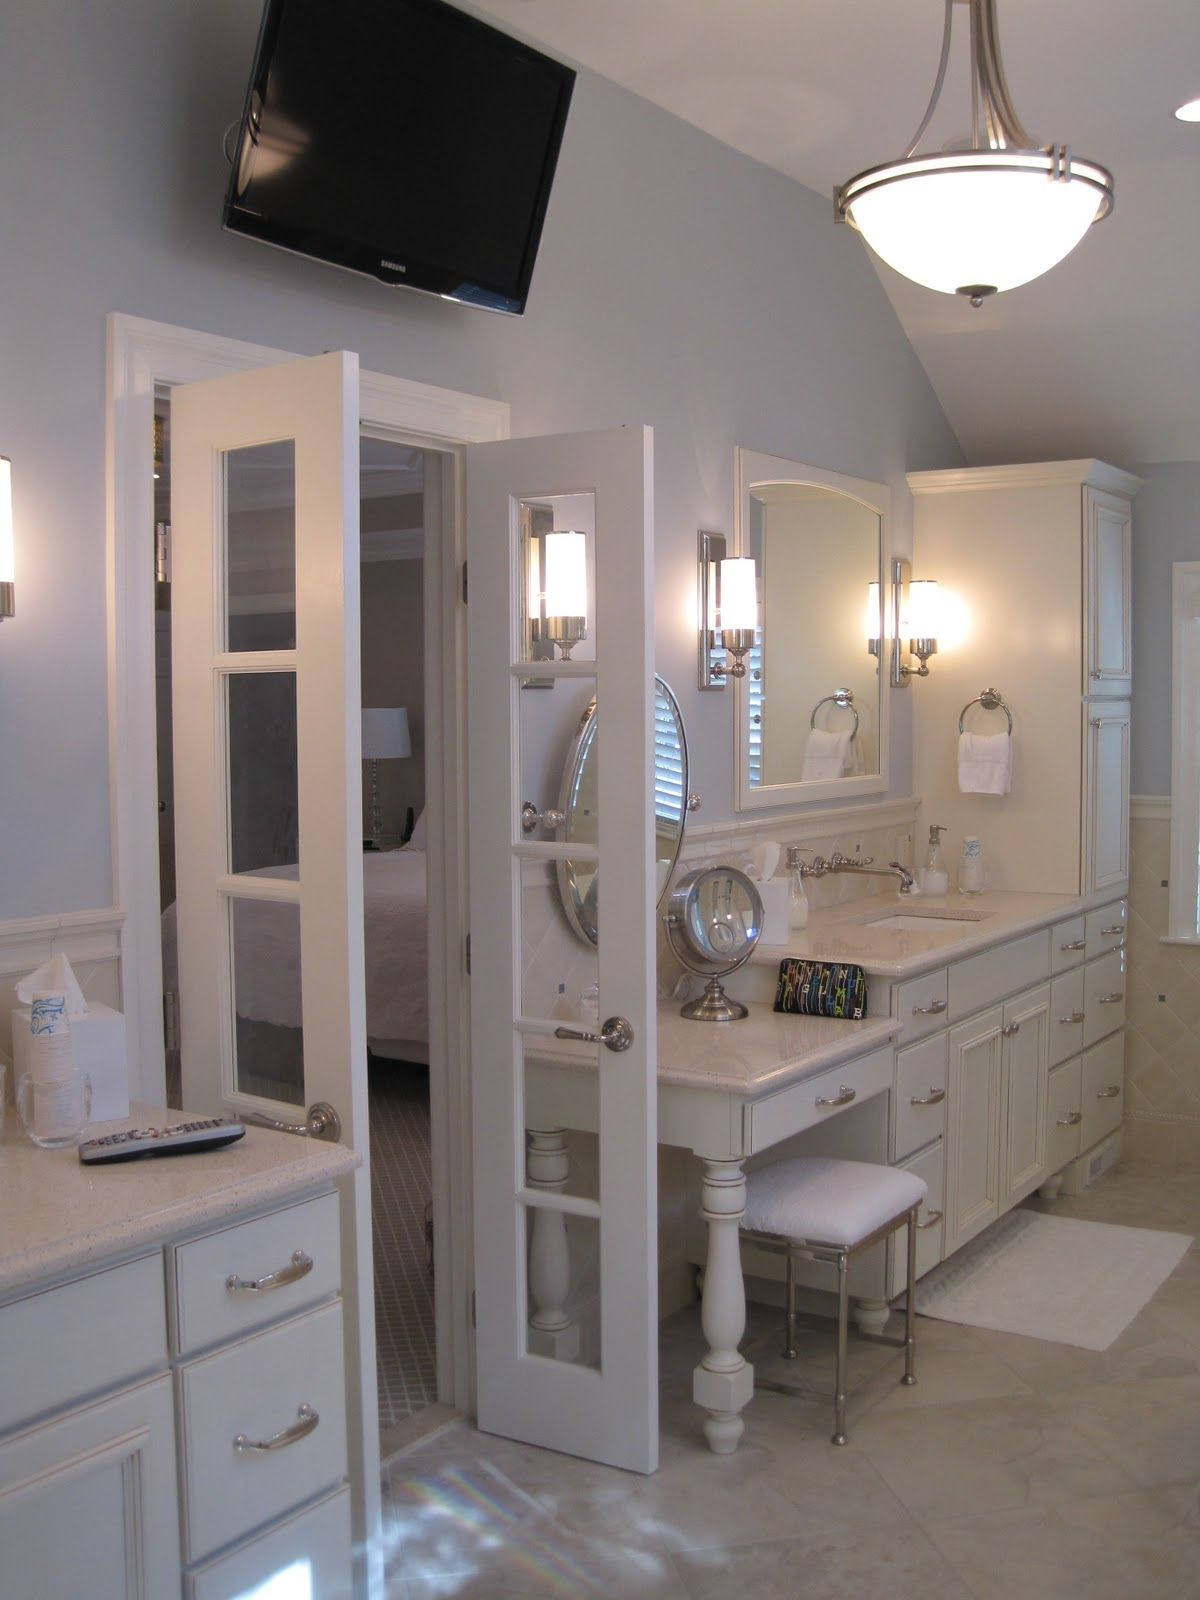 Pin By Shannon Richards On Sr Master Suite Bathroom Master Bedroom Renovation Master Suite Addition